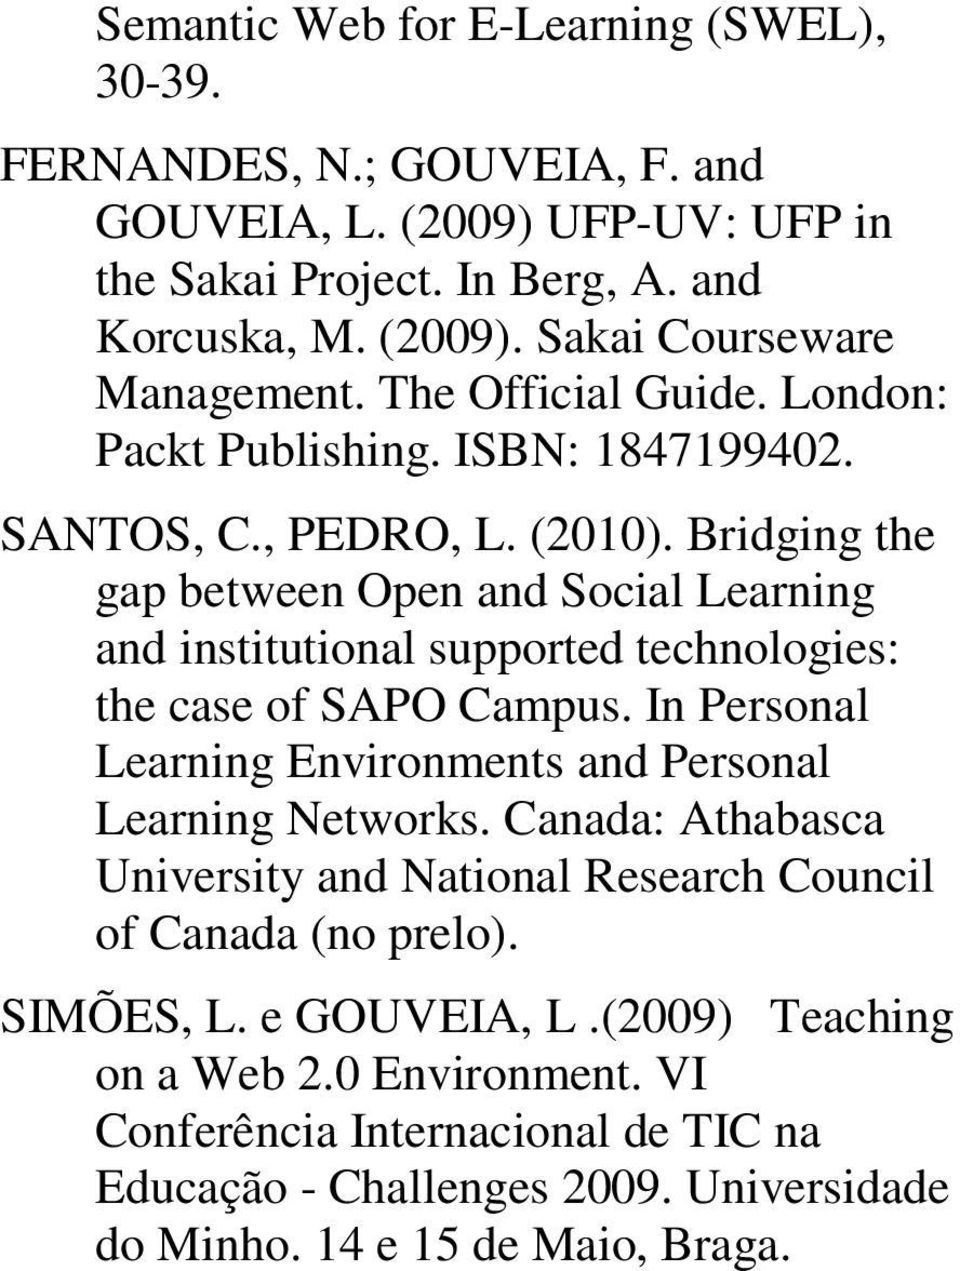 Bridging the gap between Open and Social Learning and institutional supported technologies: the case of SAPO Campus. In Personal Learning Environments and Personal Learning Networks.